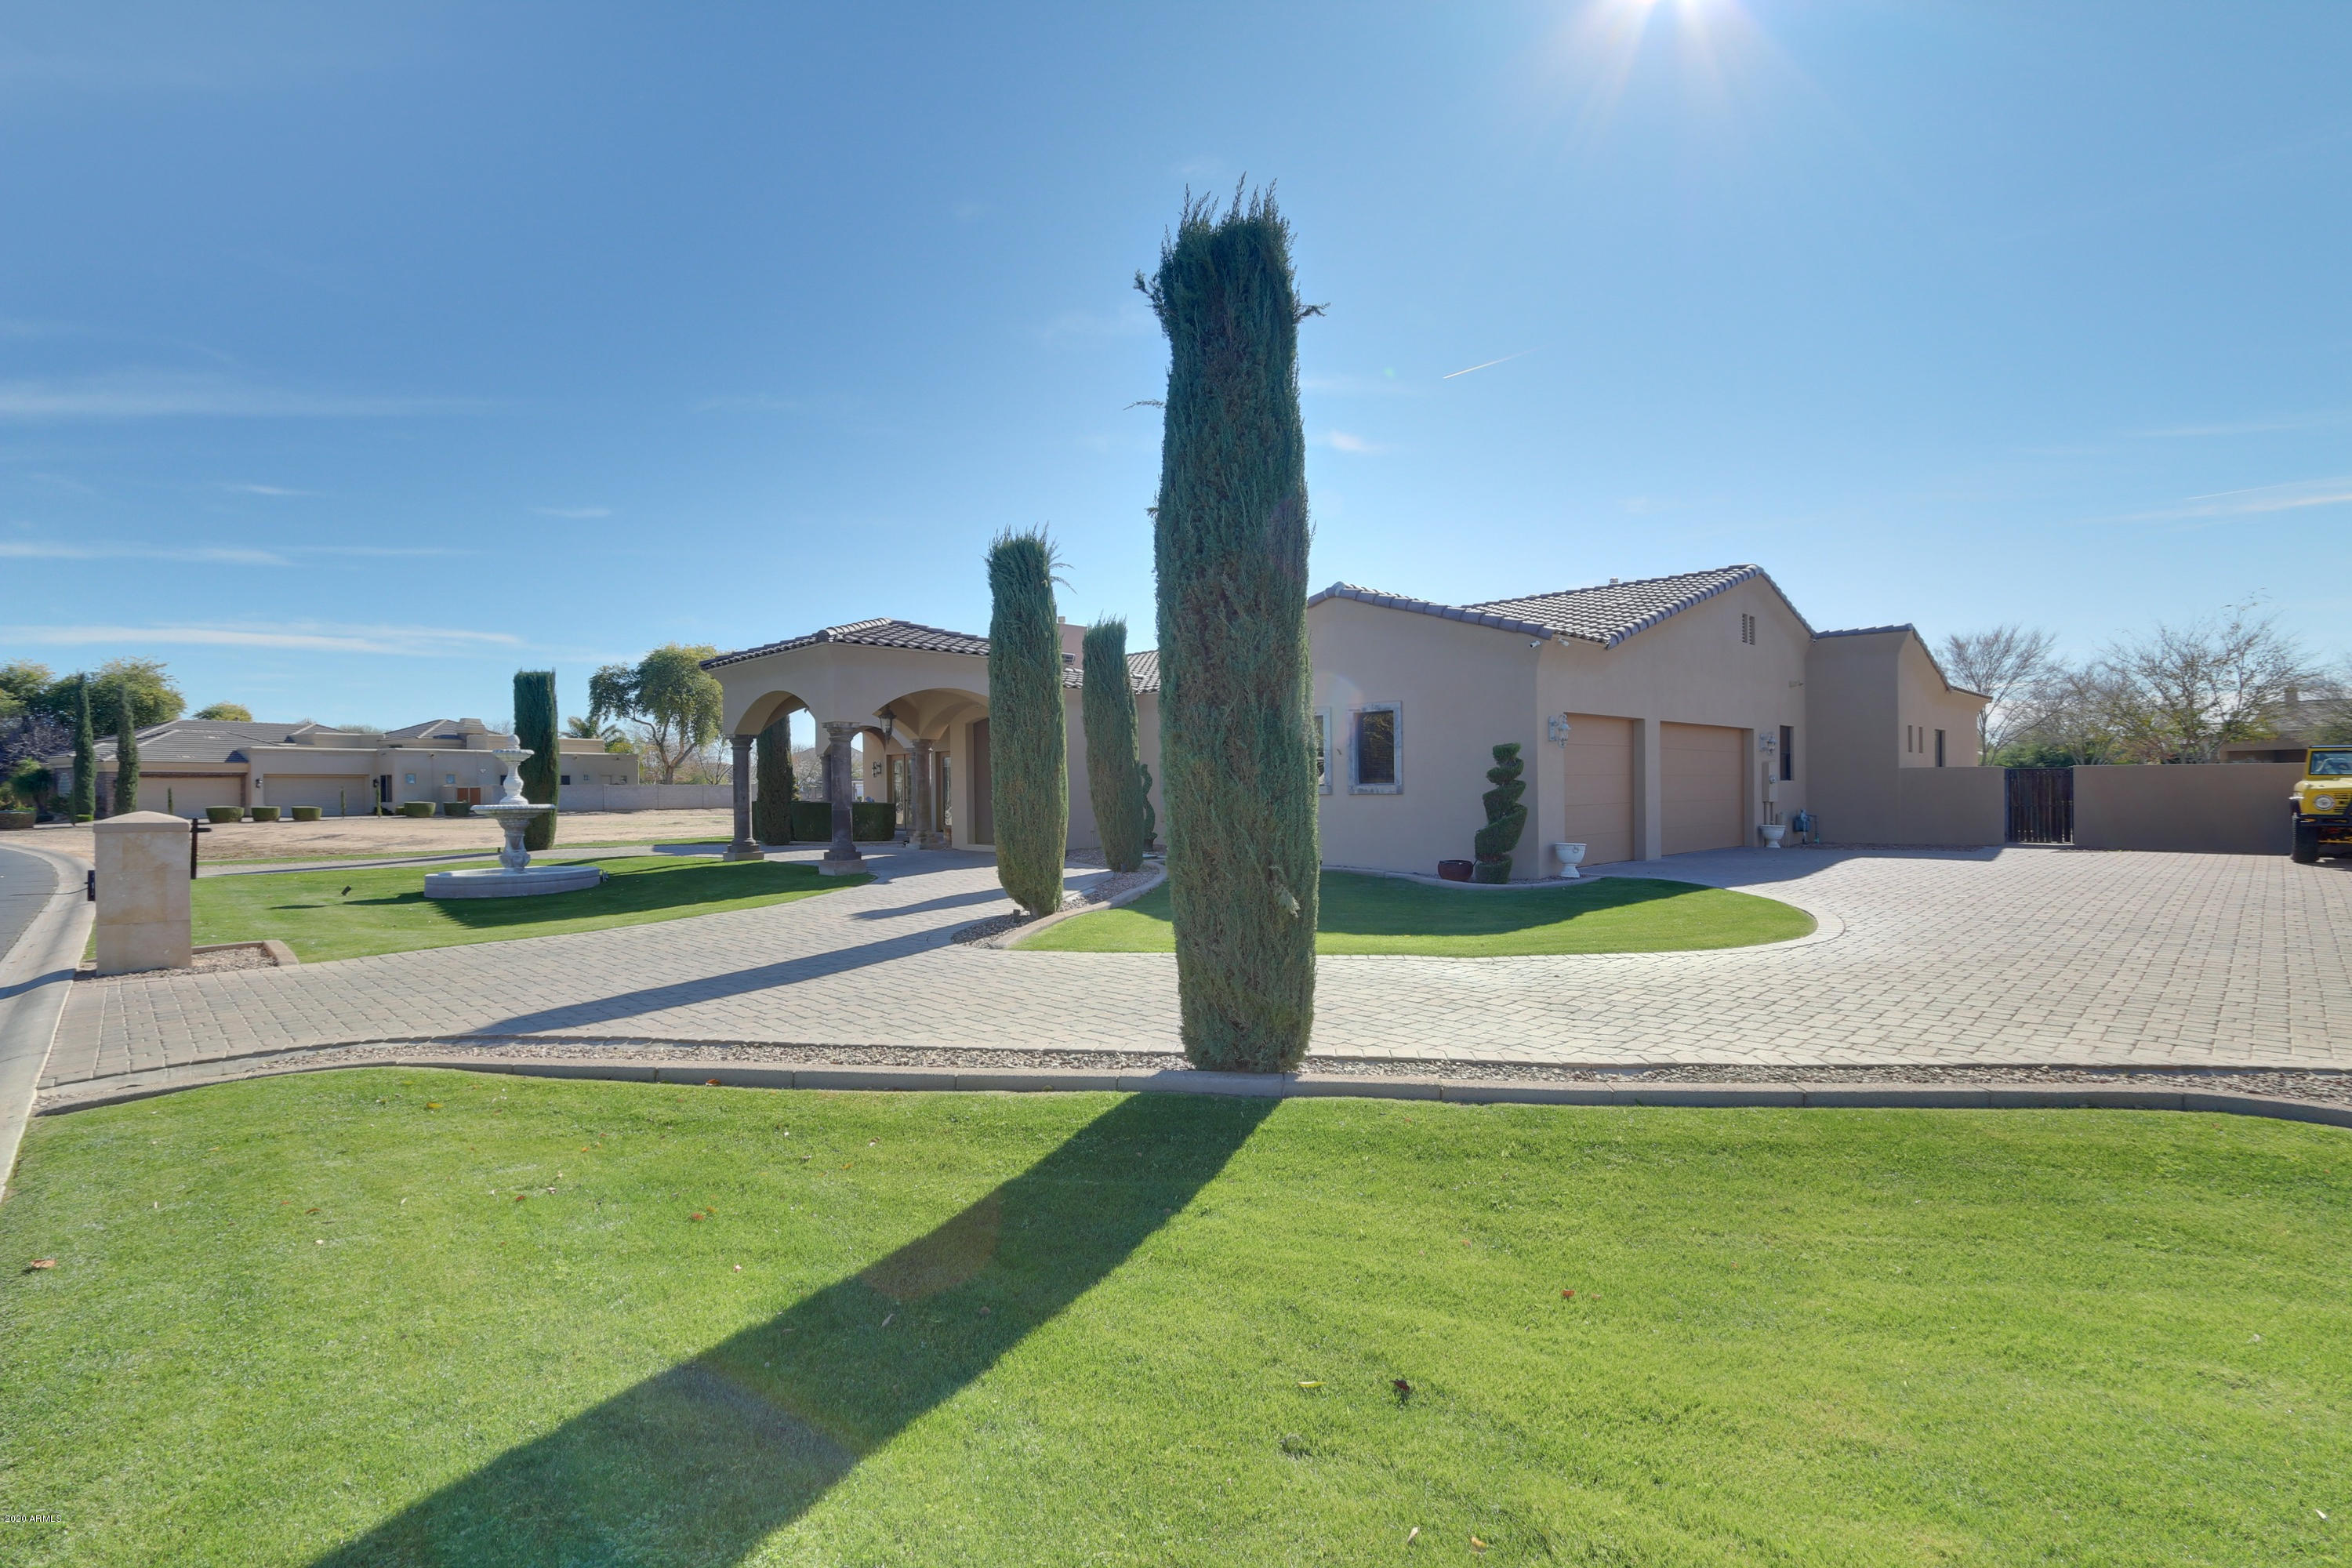 MLS 6026636 3039 E BONANZA Road, Gilbert, AZ 85297 Gilbert AZ Whitewing At Higley